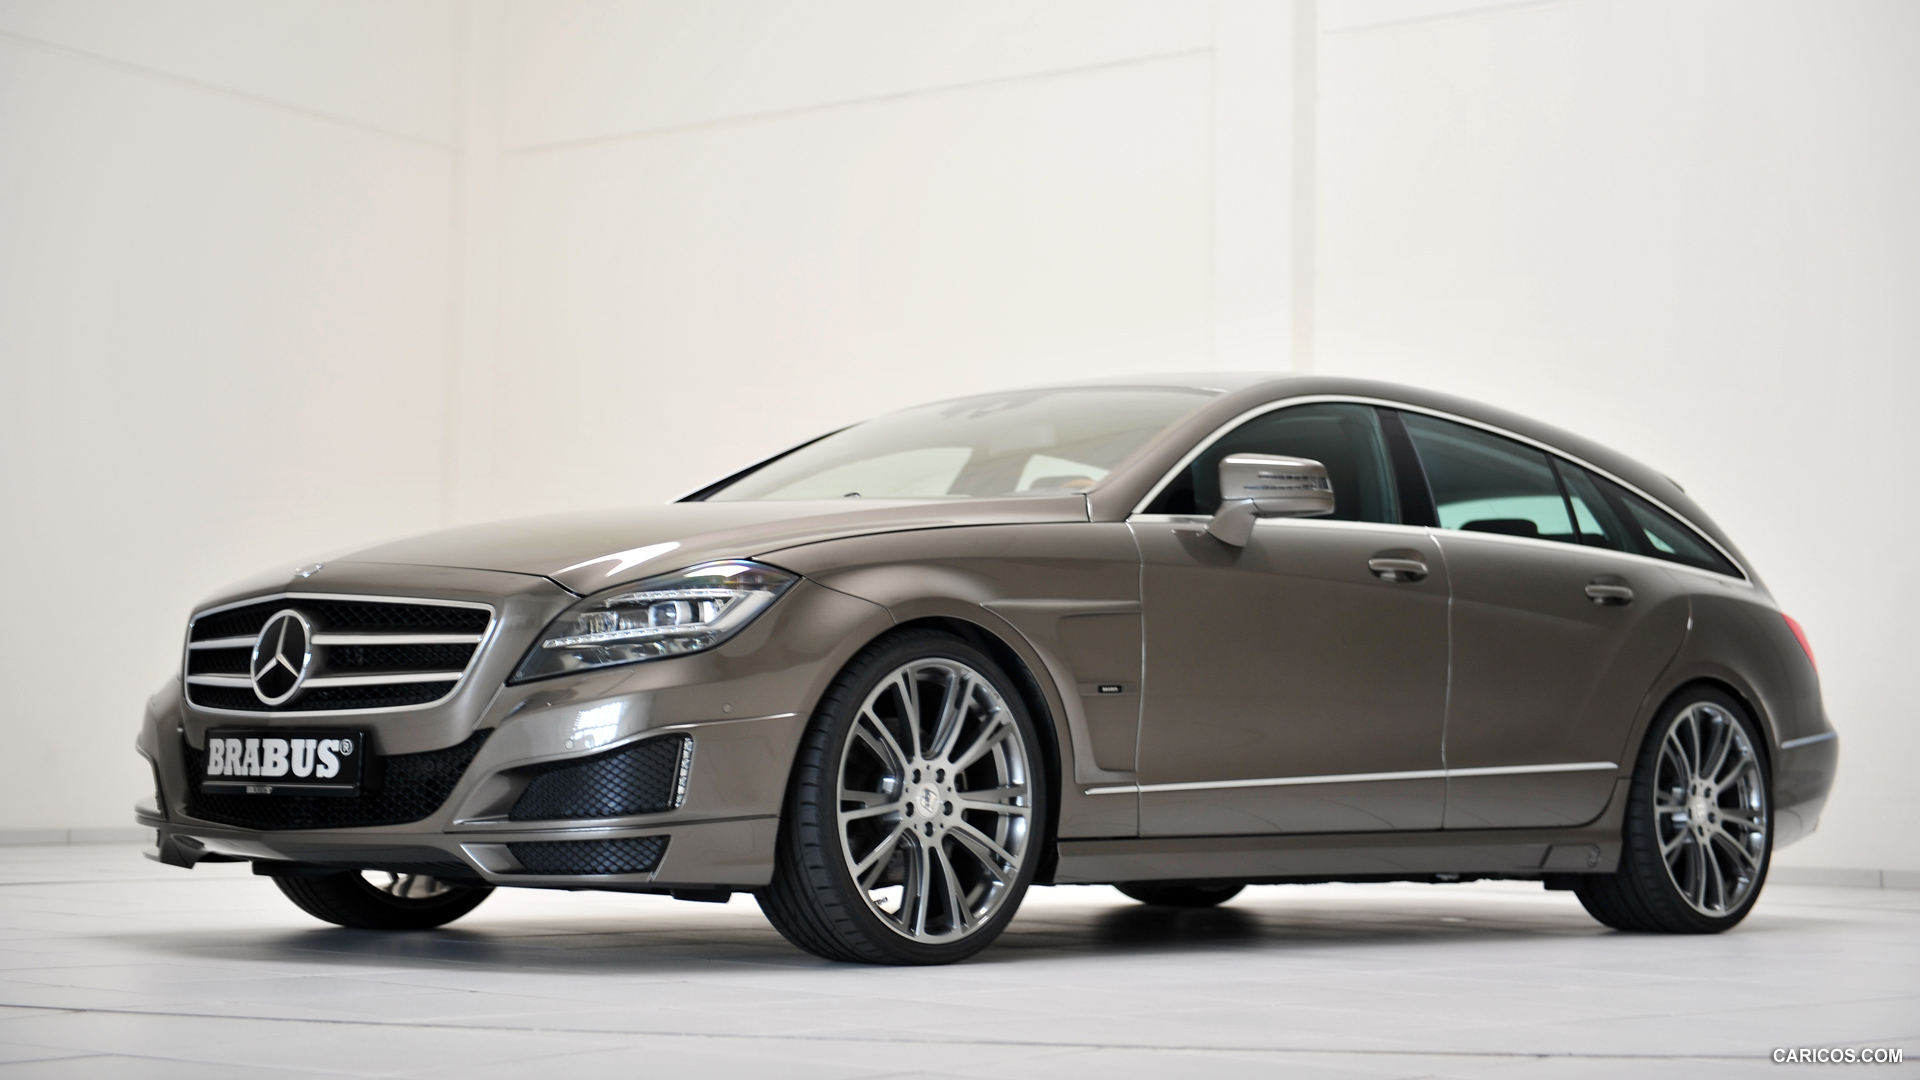 Brabus CLS Shooting Brake photo 119653